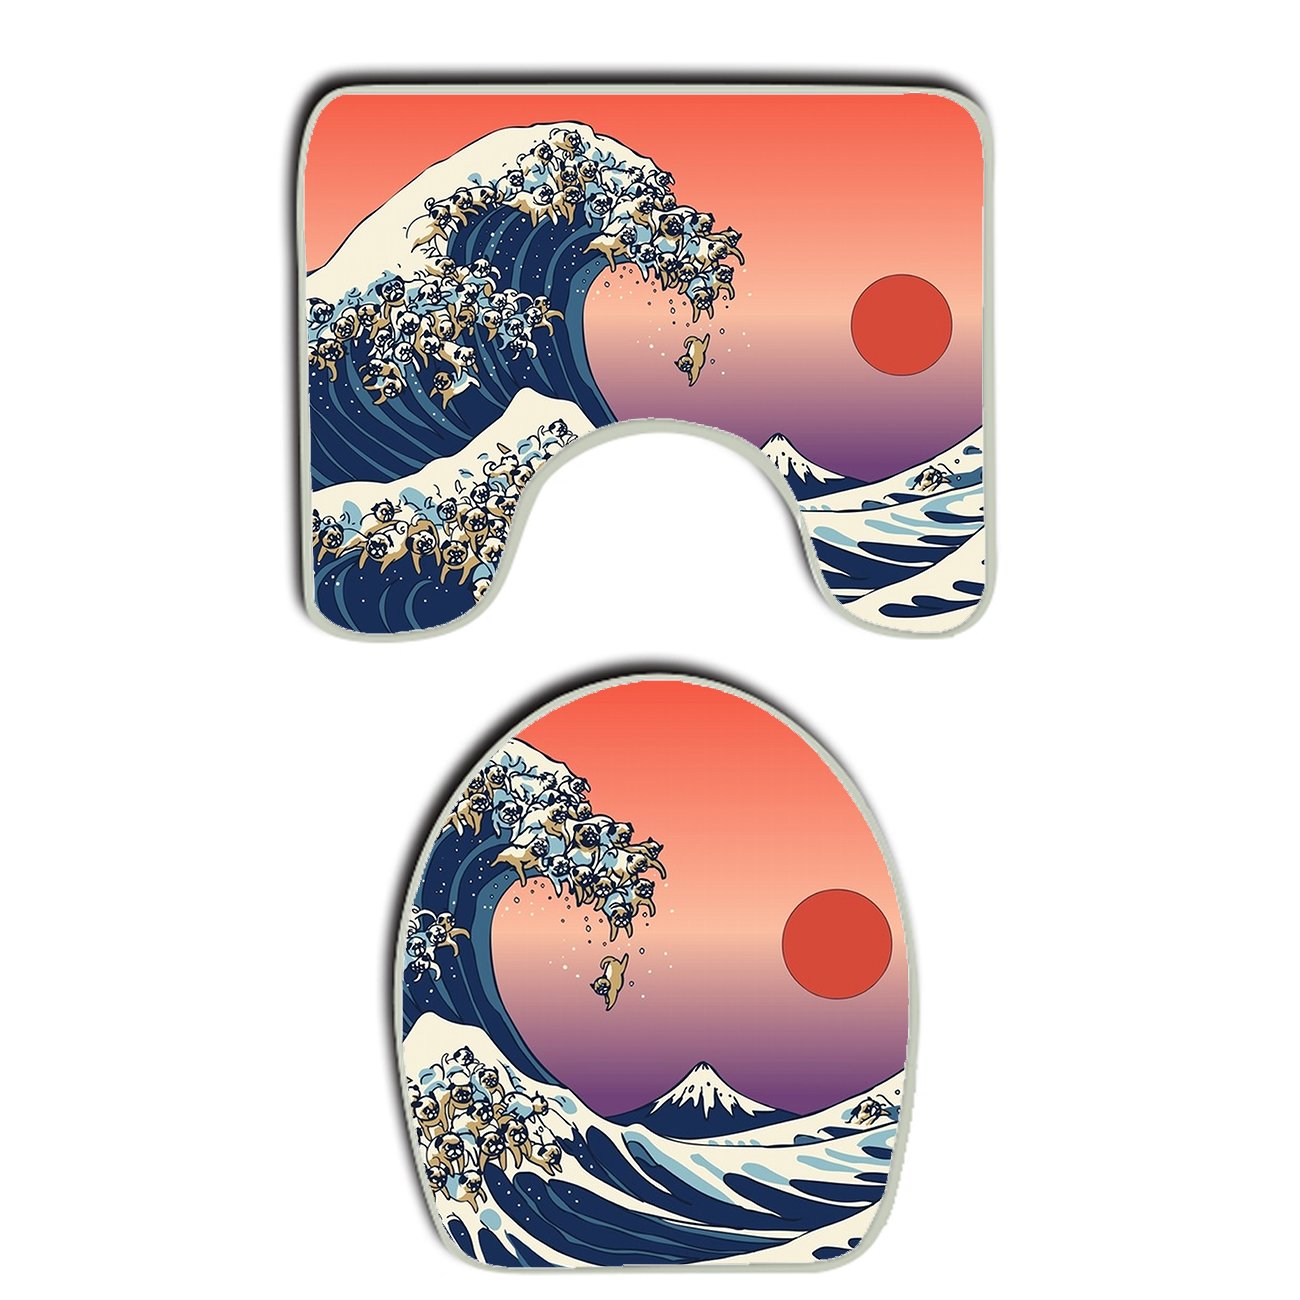 durable service AMERICAN TANG Japanese The Great Wave Of Pug ocean funny Pattern Bathroom Carpet Rug, Non-Slip 2 Piece Bathroom Mat Set Decoration